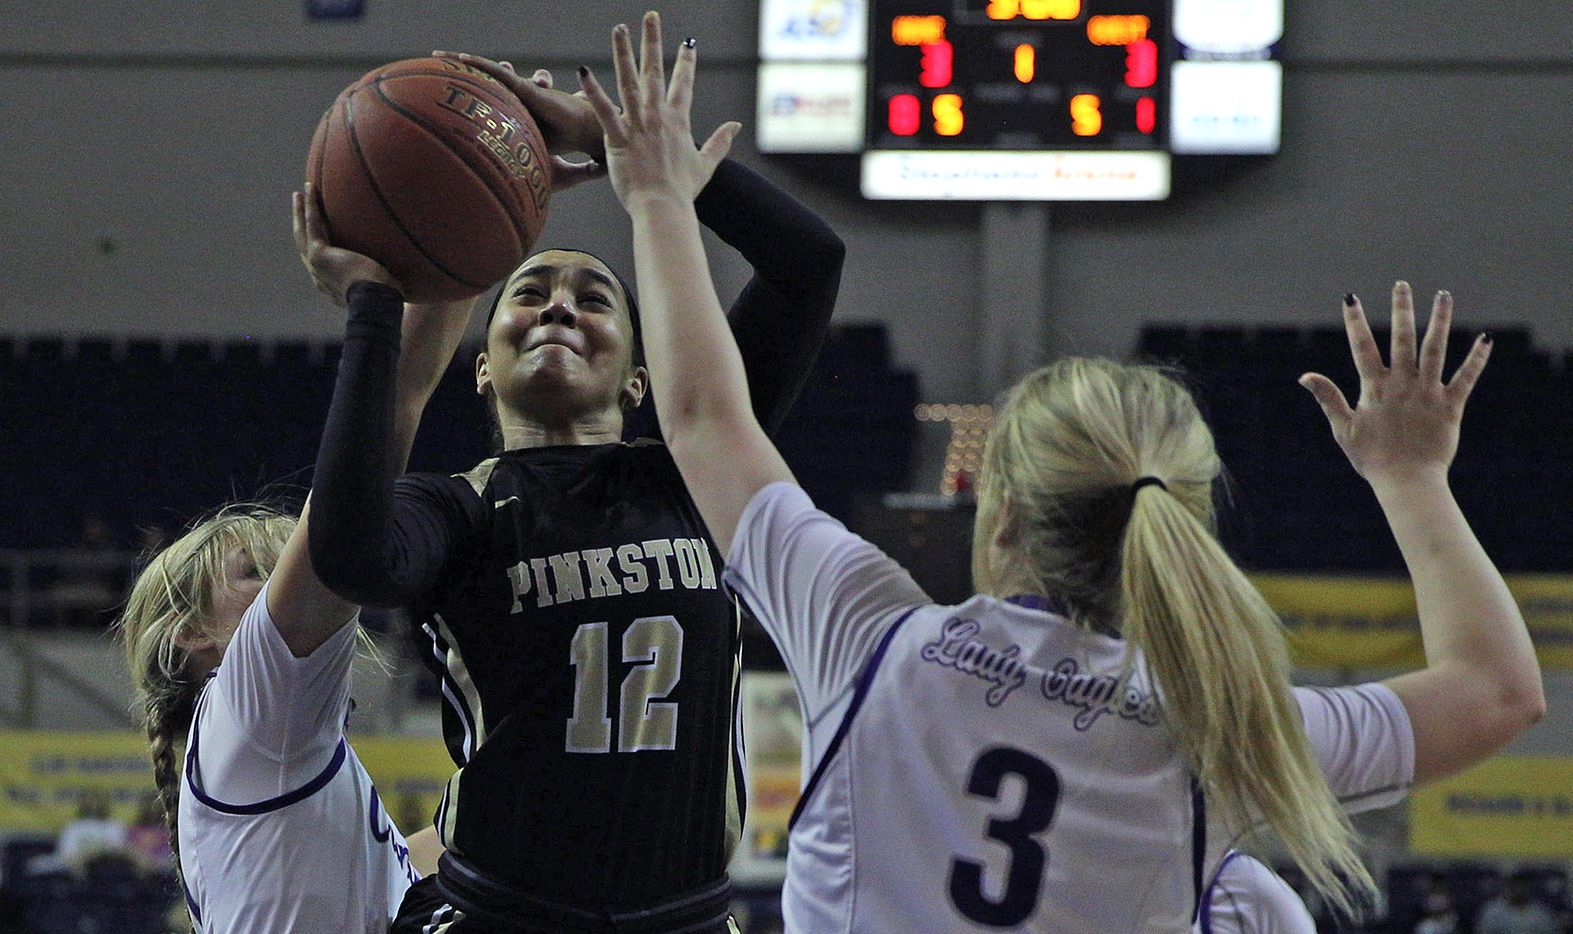 Tamia Flores (12), left, puts up a shot for Pinkston during the Texas UIL Girls 4A state semi-final game against Canyon in San Angelo, TX on Saturday, March 6, 2021. (Colin Murphey/Special Contributor)